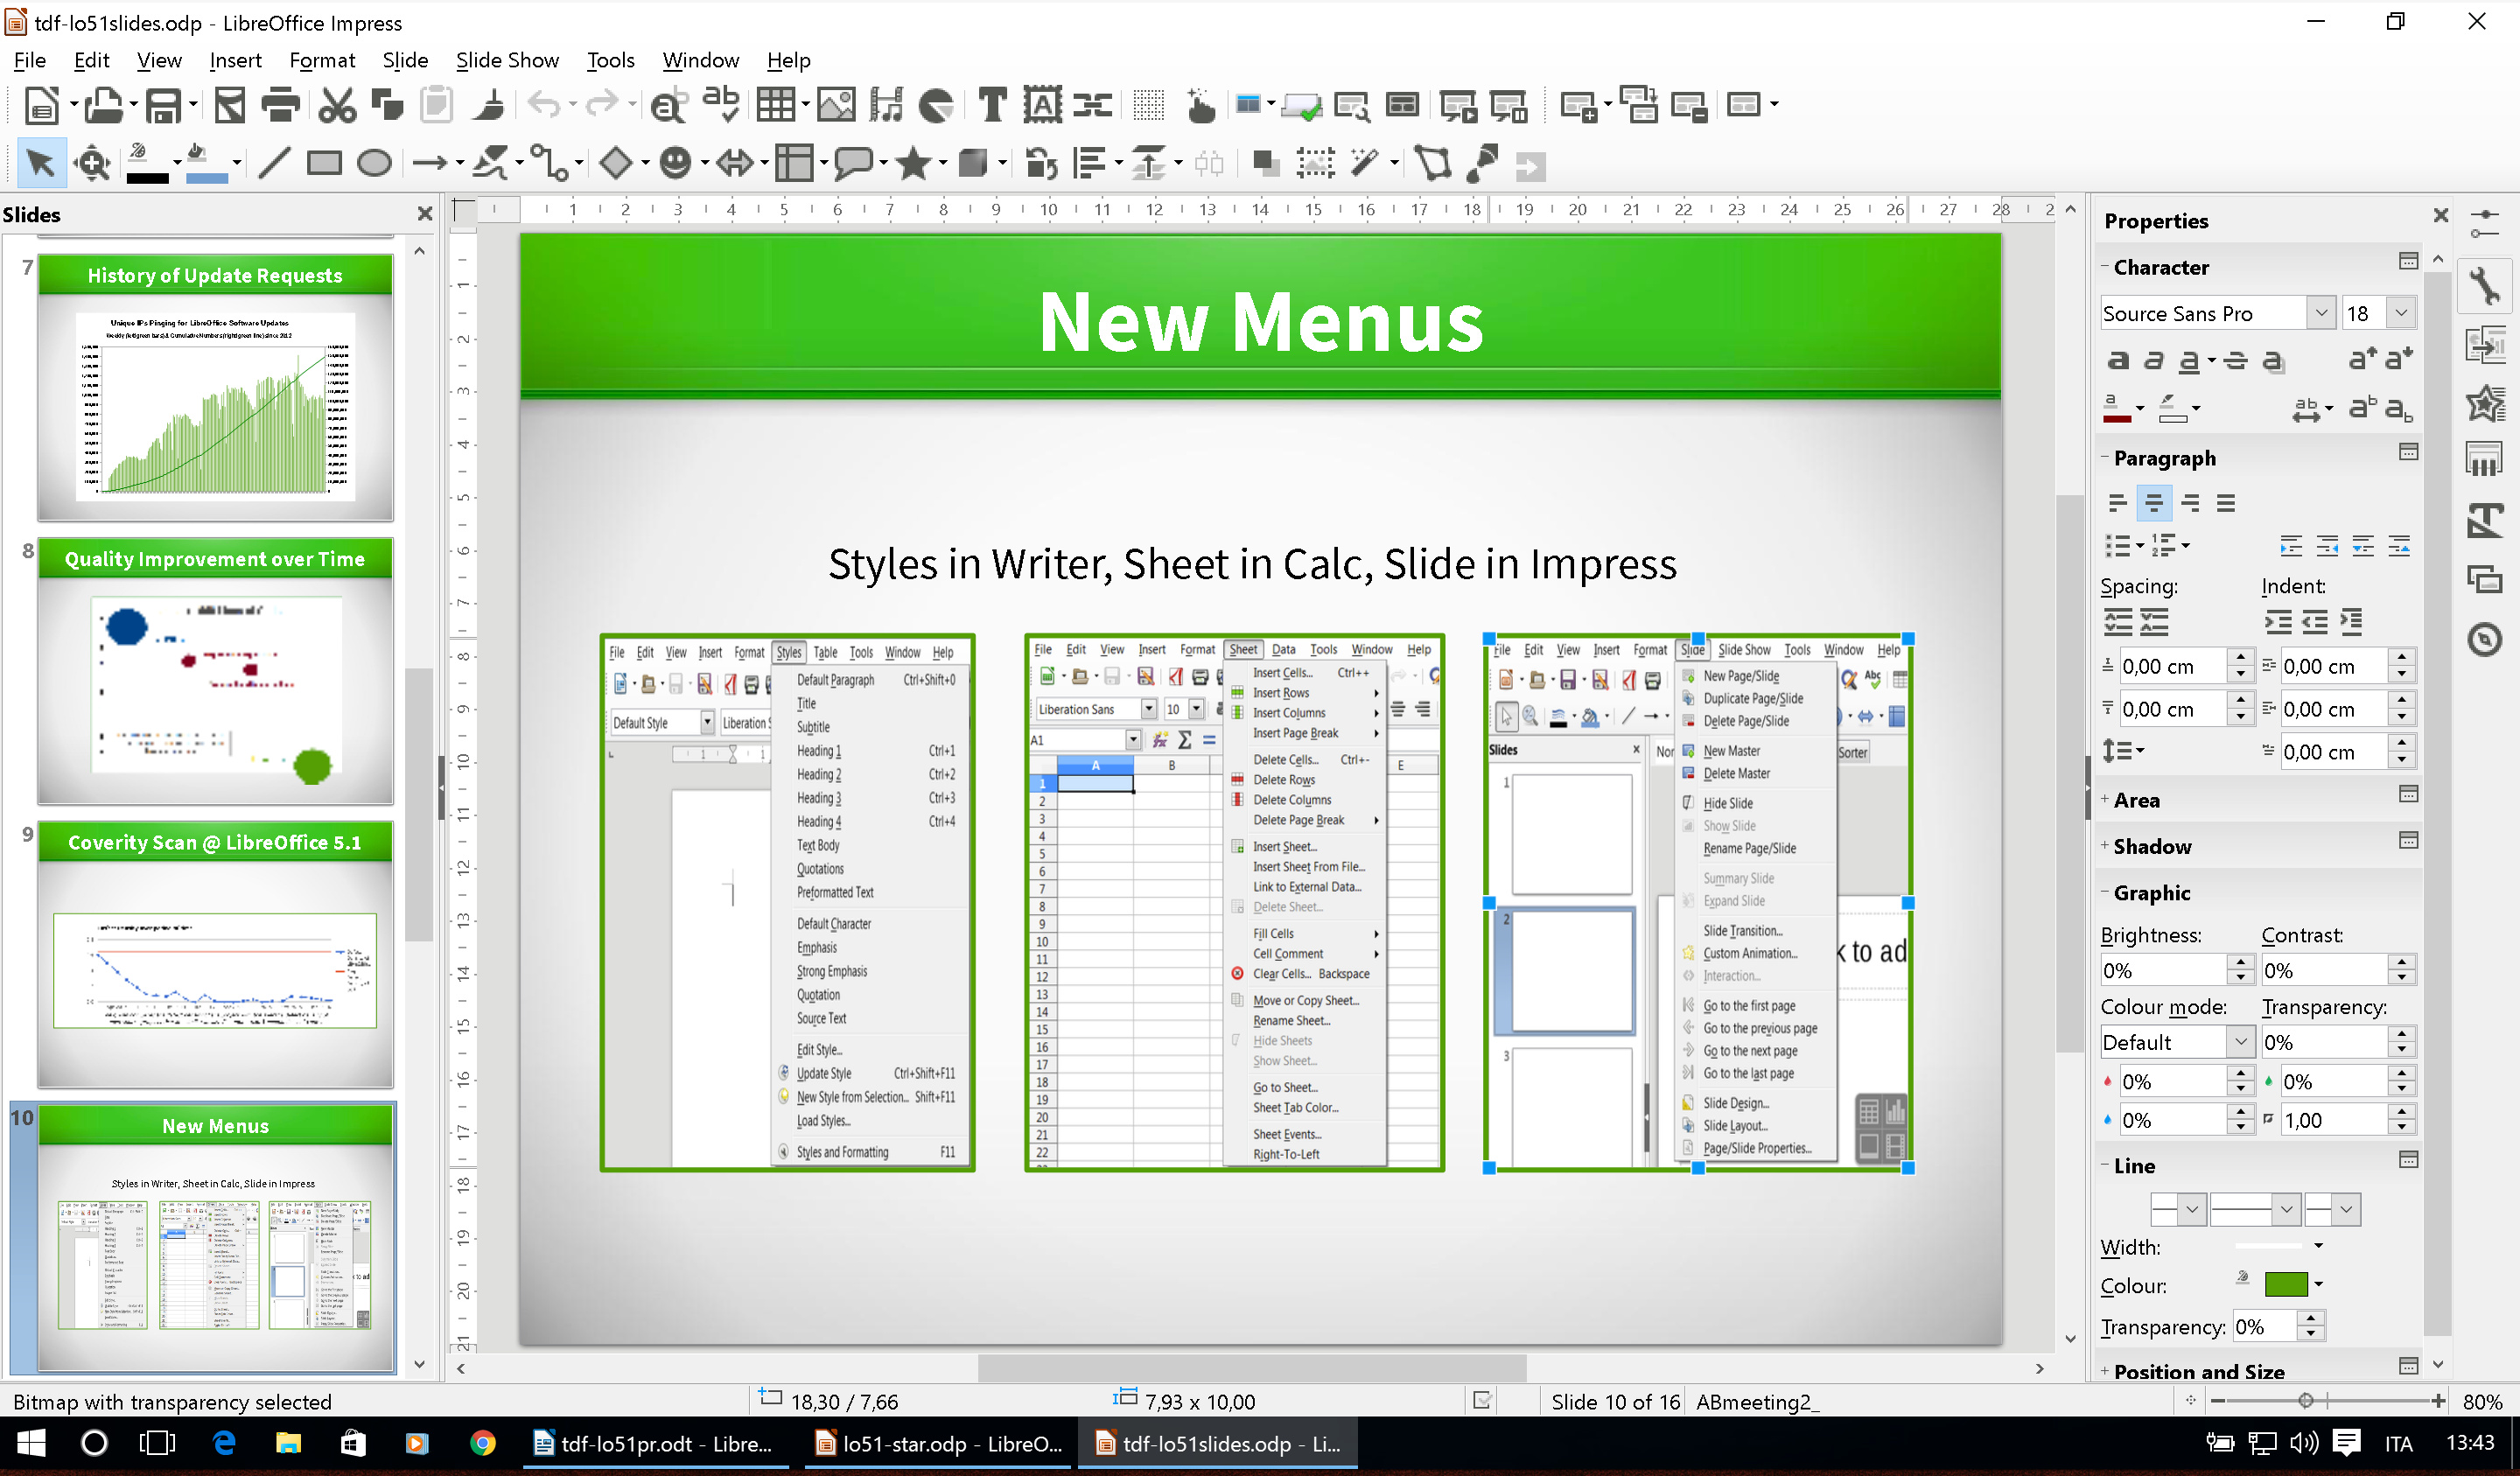 libreoffice 5.0.6